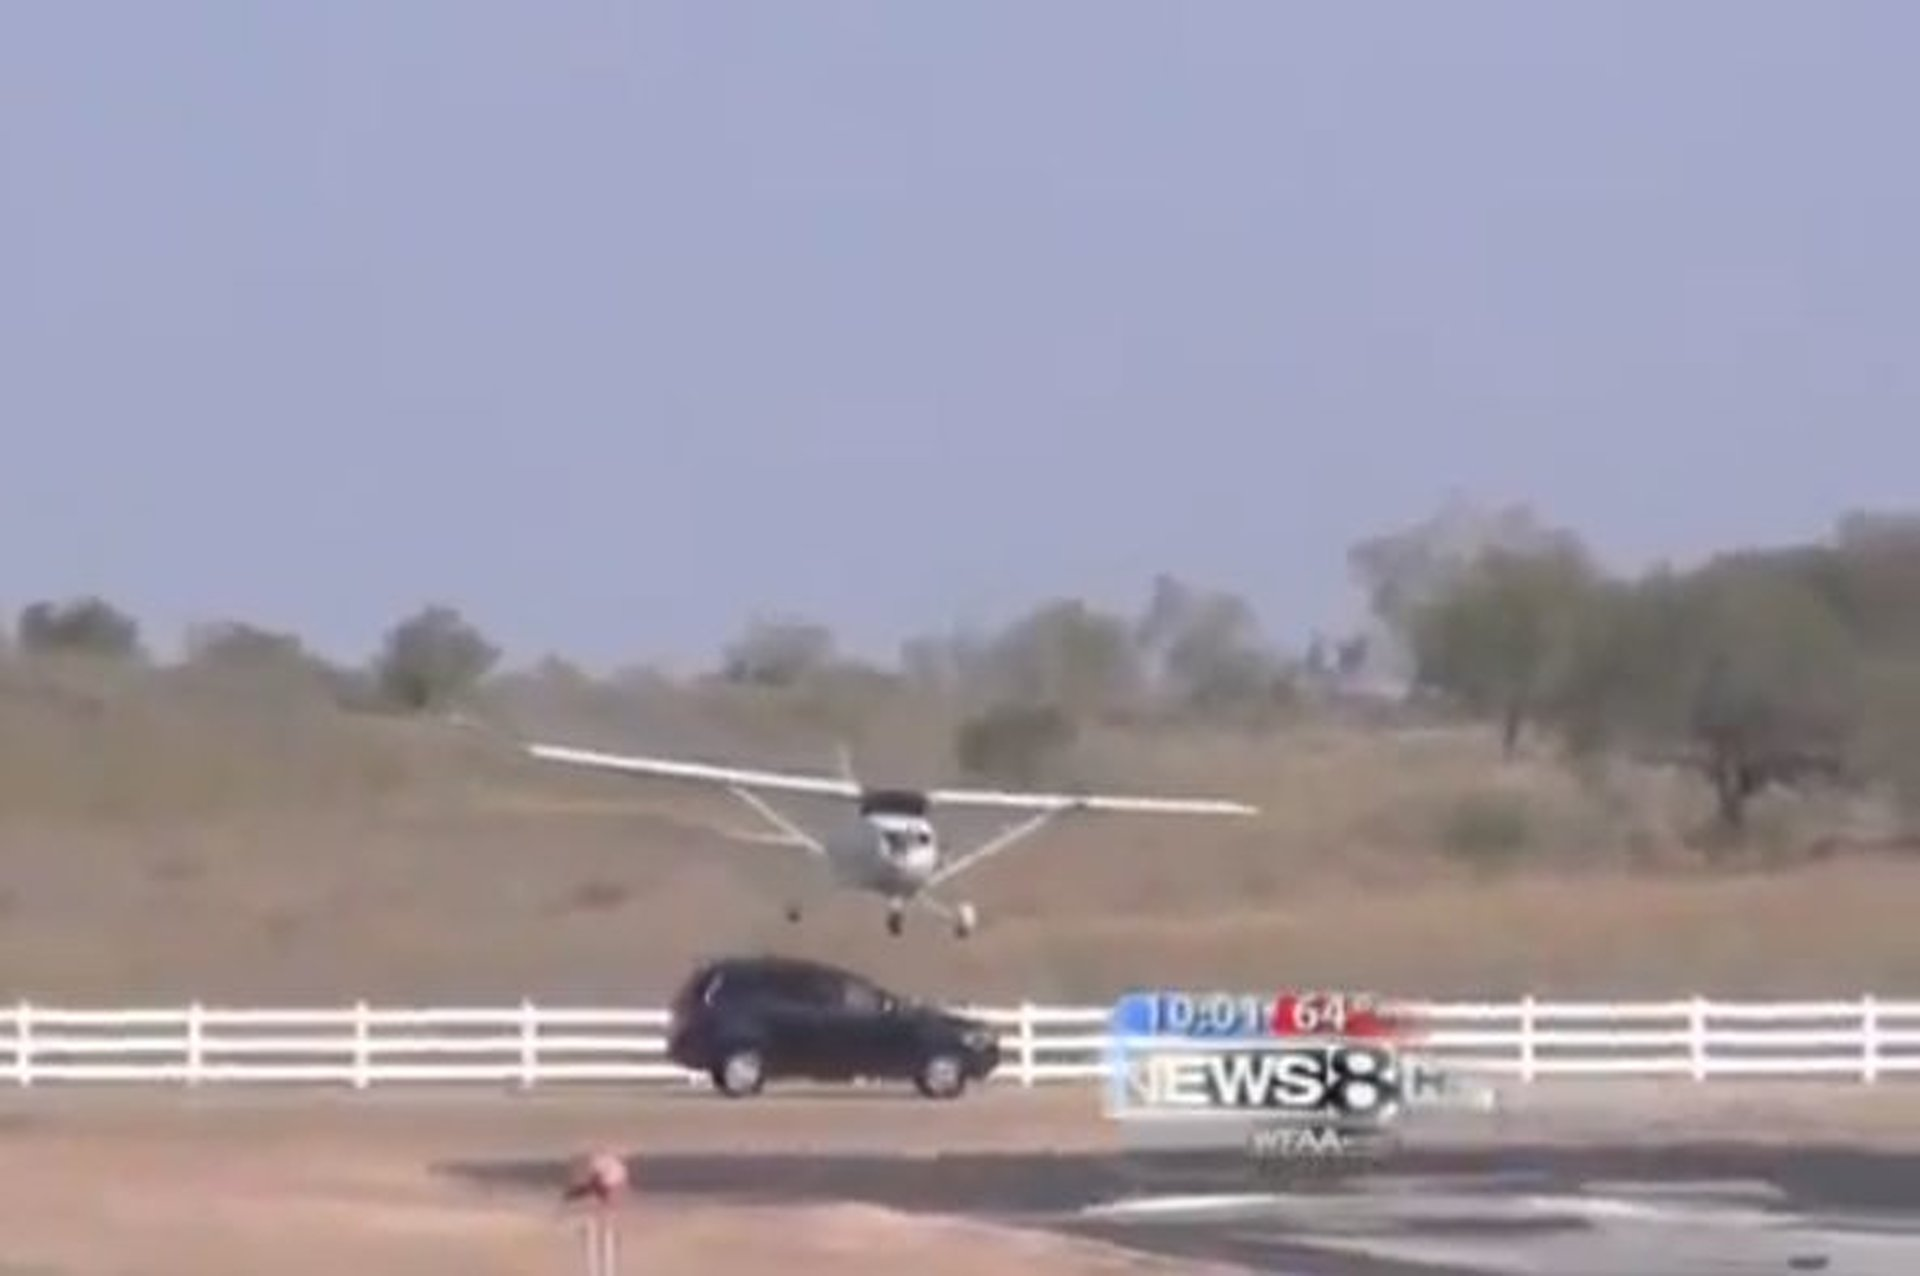 Small Plane Clips Volvo Crossover on Landing